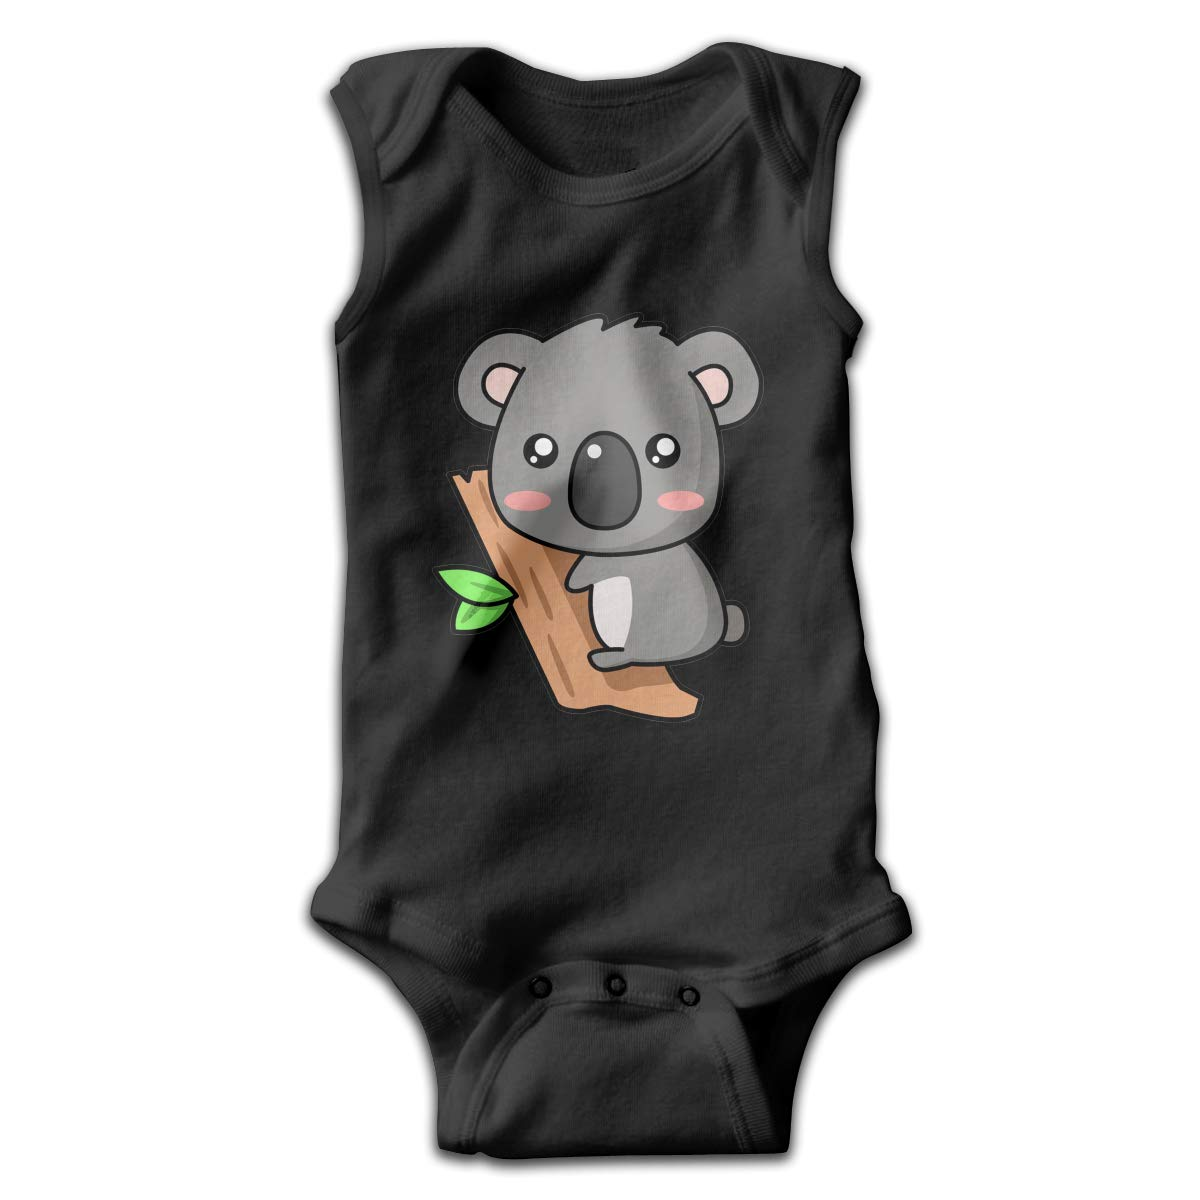 Cute Koala Newborn Crawling Suit Sleeveless Romper Bodysuit Onesies Jumpsuit Black